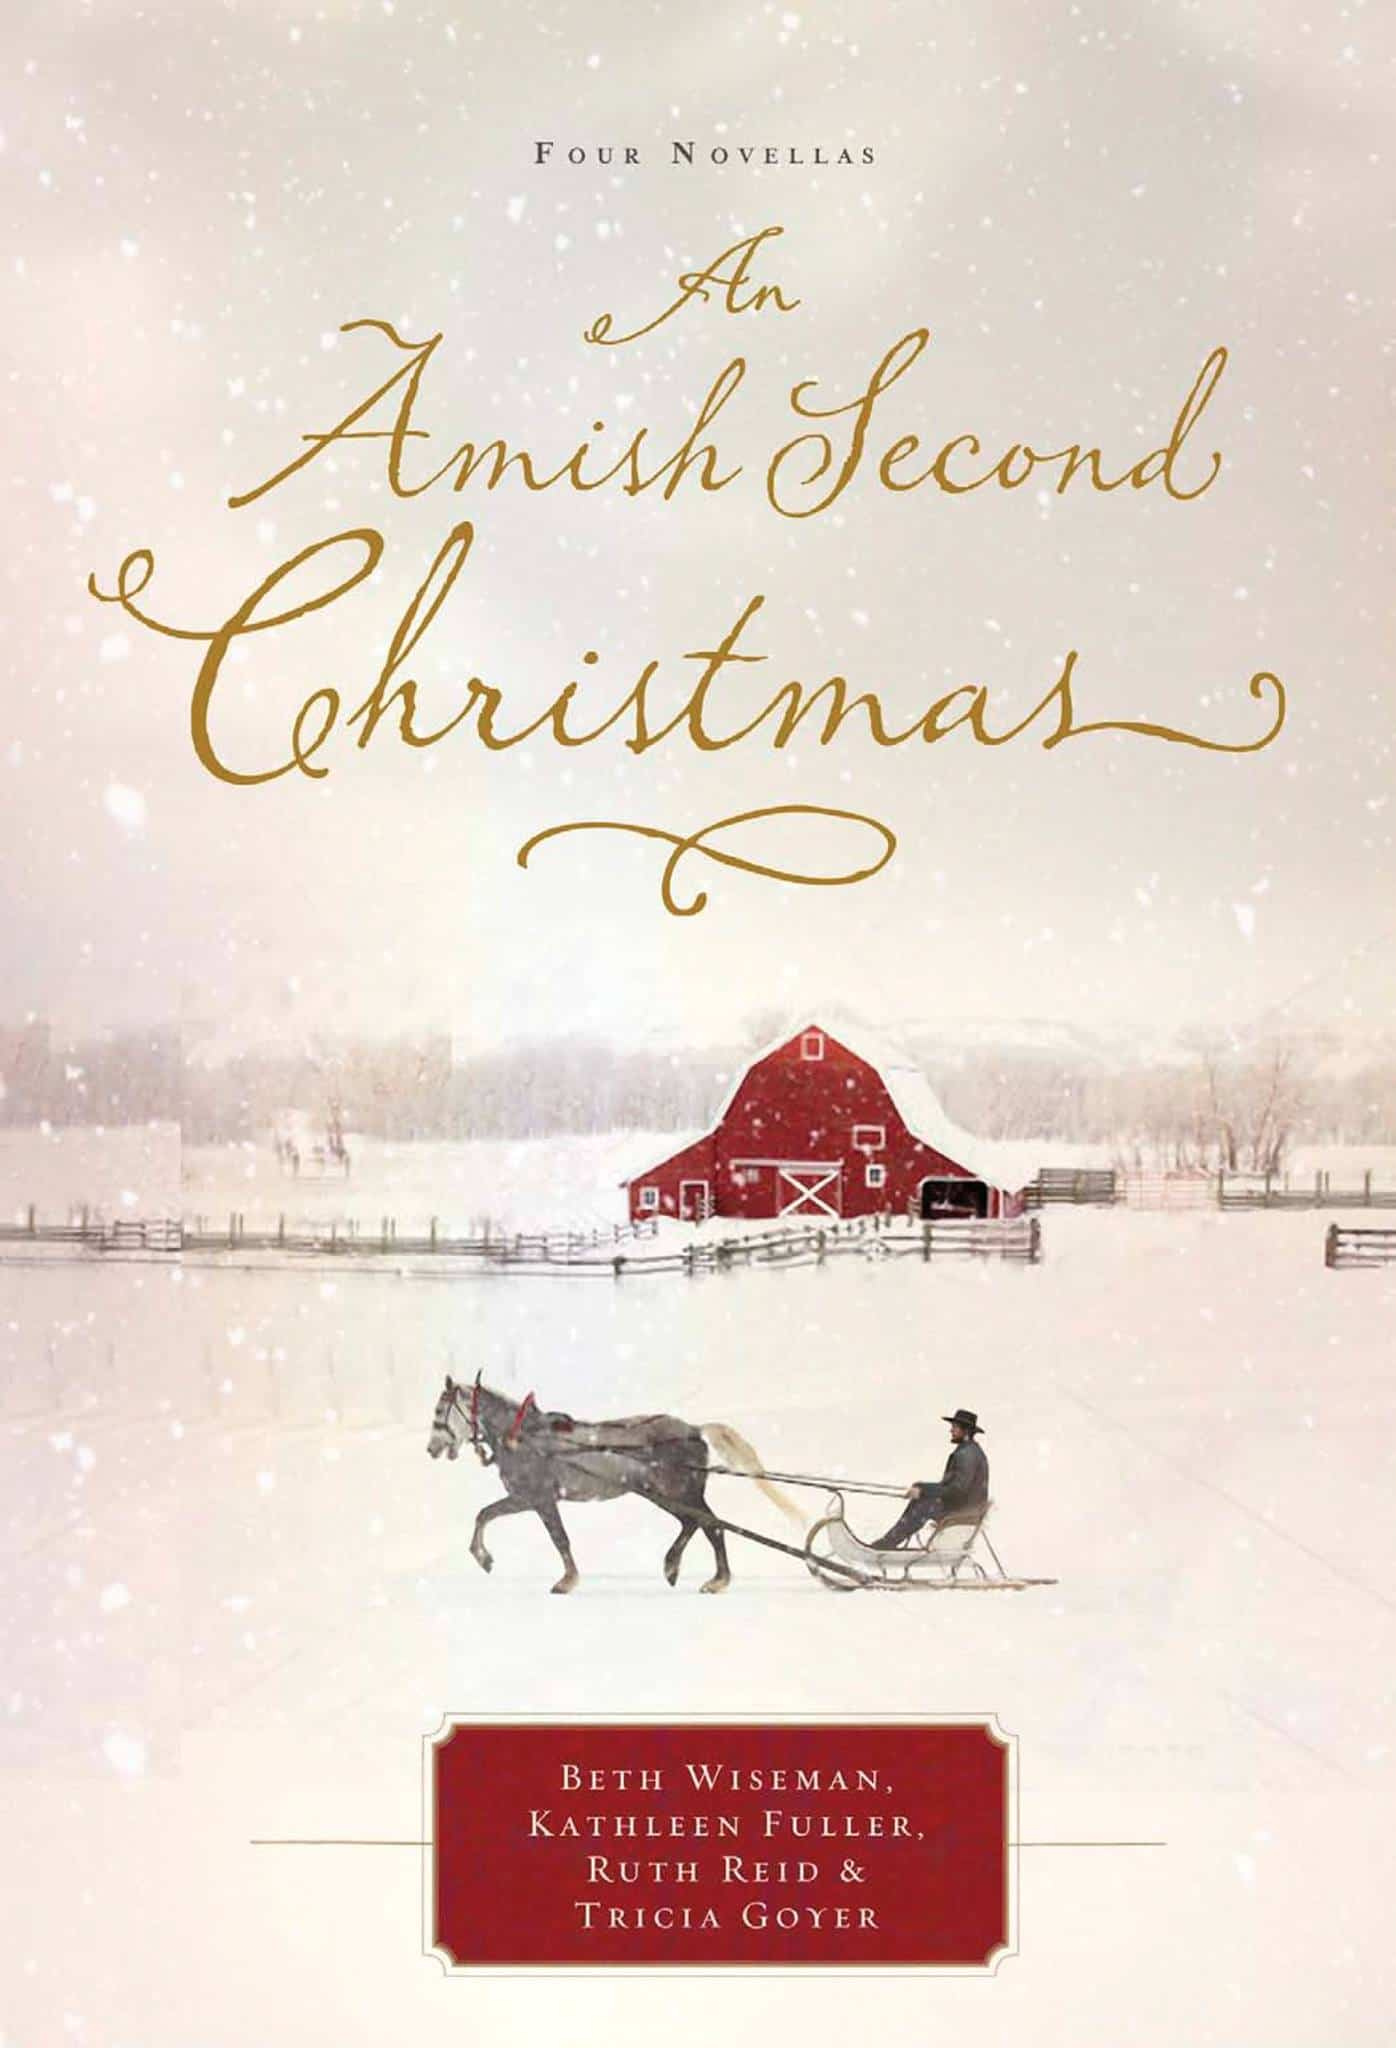 An Amish Second Christmas Book Review